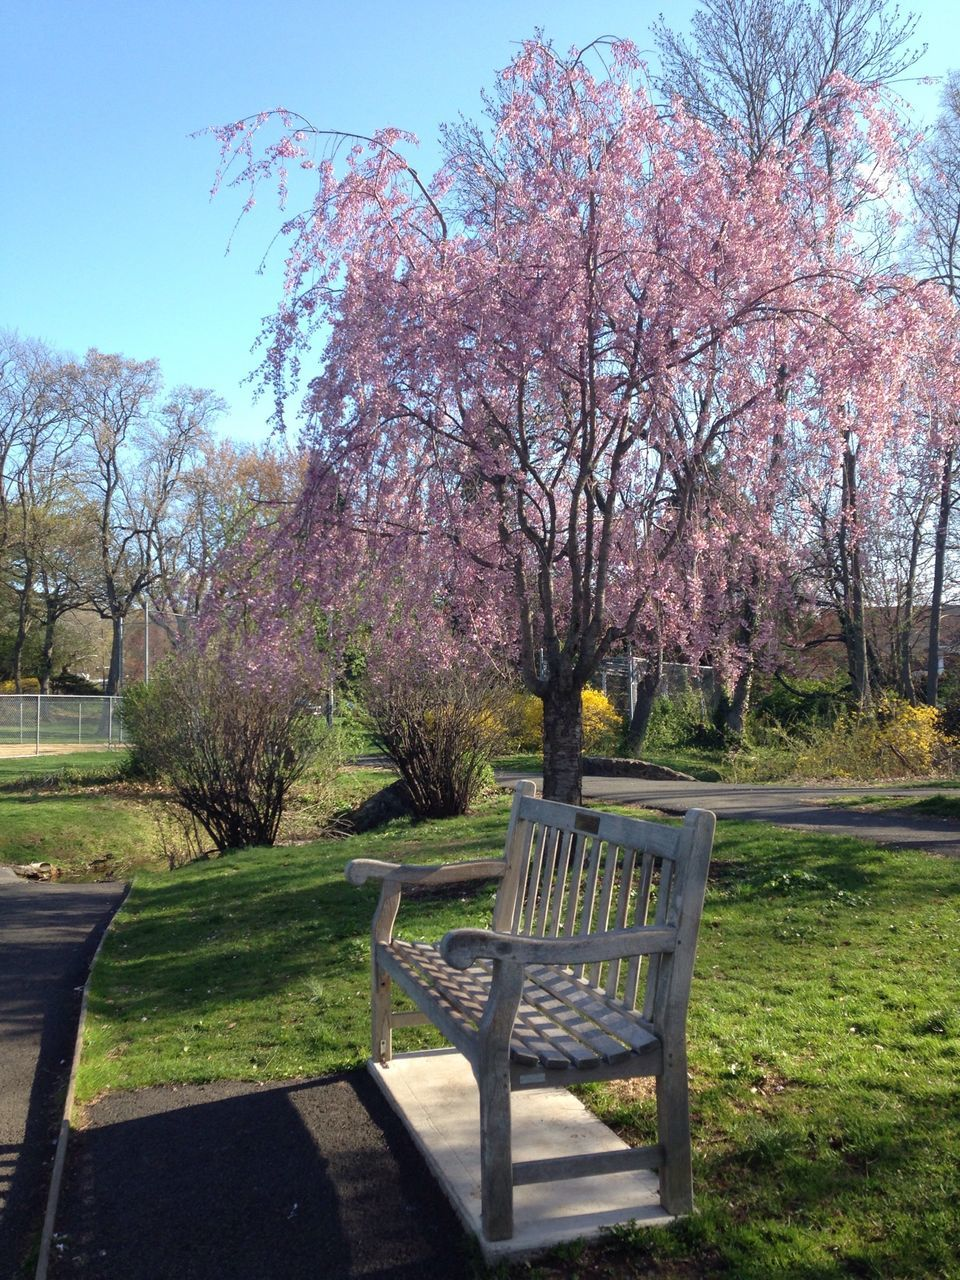 Bench In Park And Blooming Tree